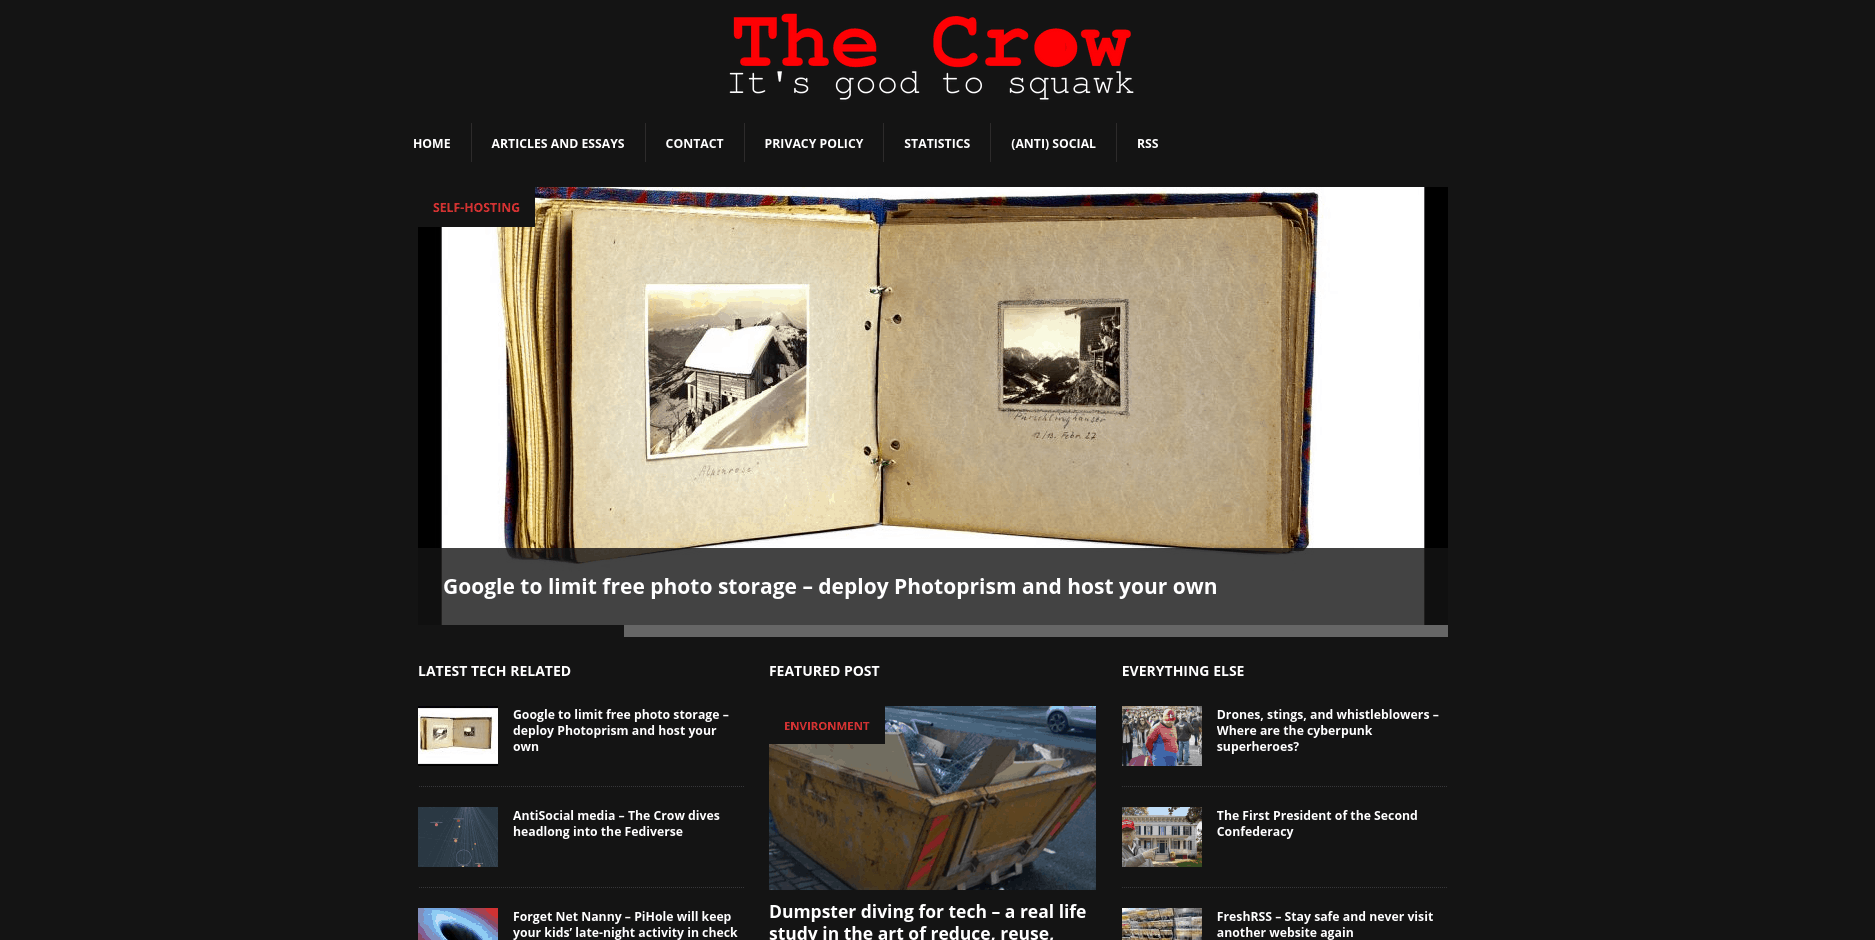 The old Crow WordPress site